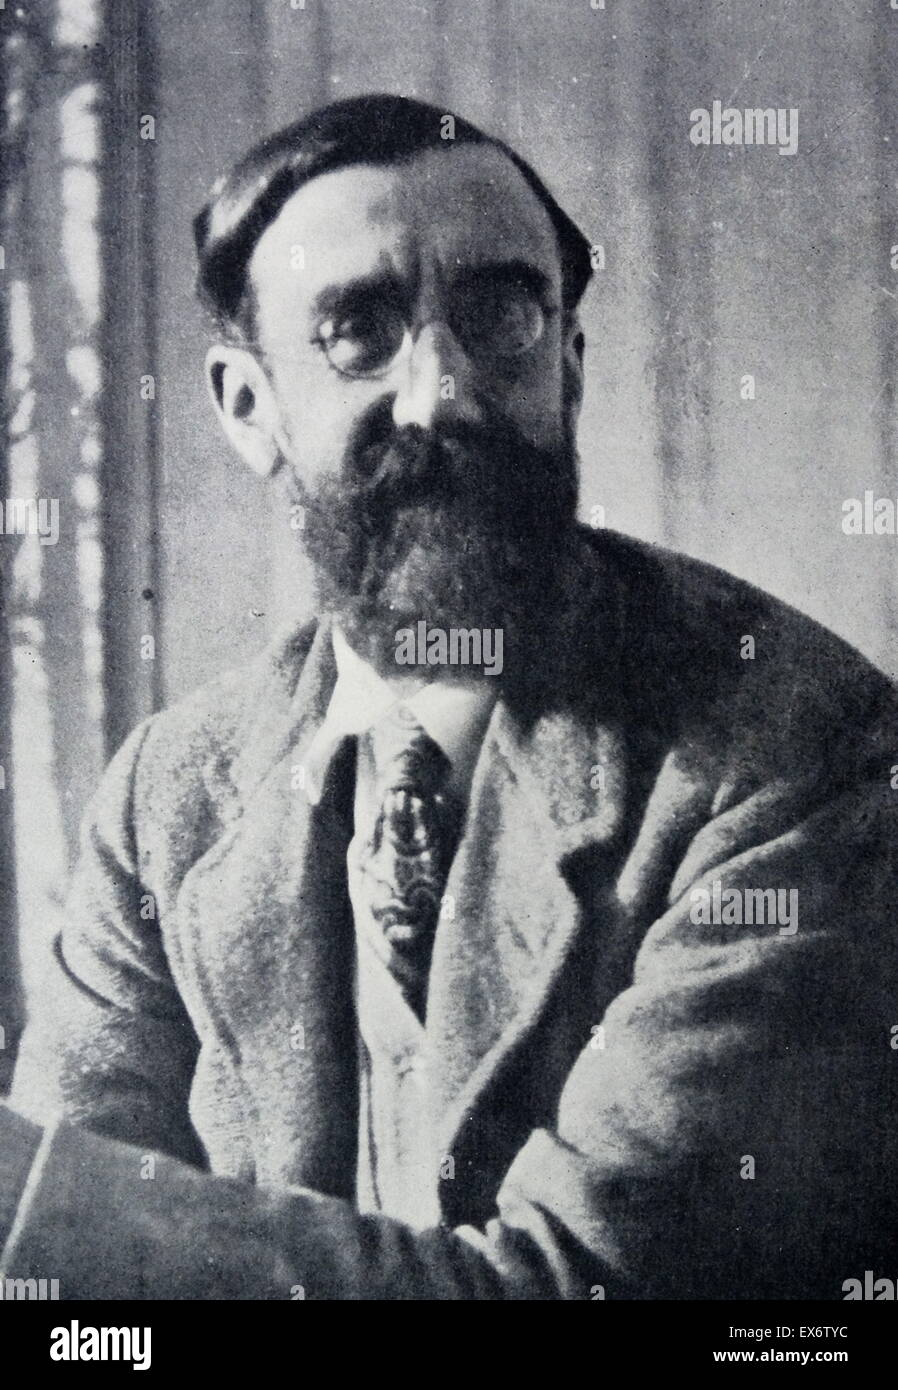 Giles Lytton Strachey 1880-1932. British writer and critic. founding member of the Bloomsbury Group and author of - Stock Image